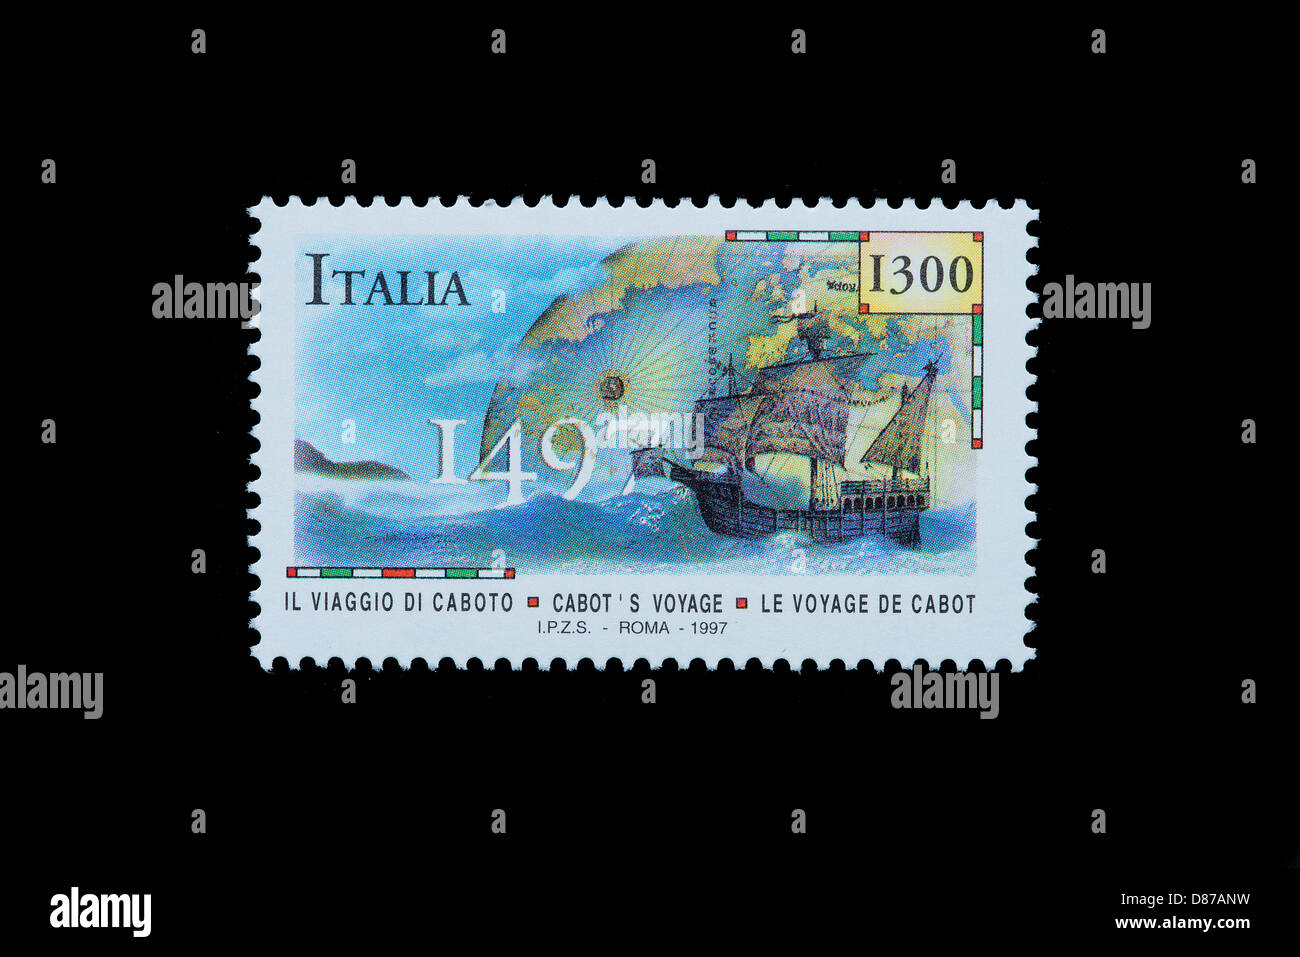 Sebastian Cabot in an italian stamp - Stock Image